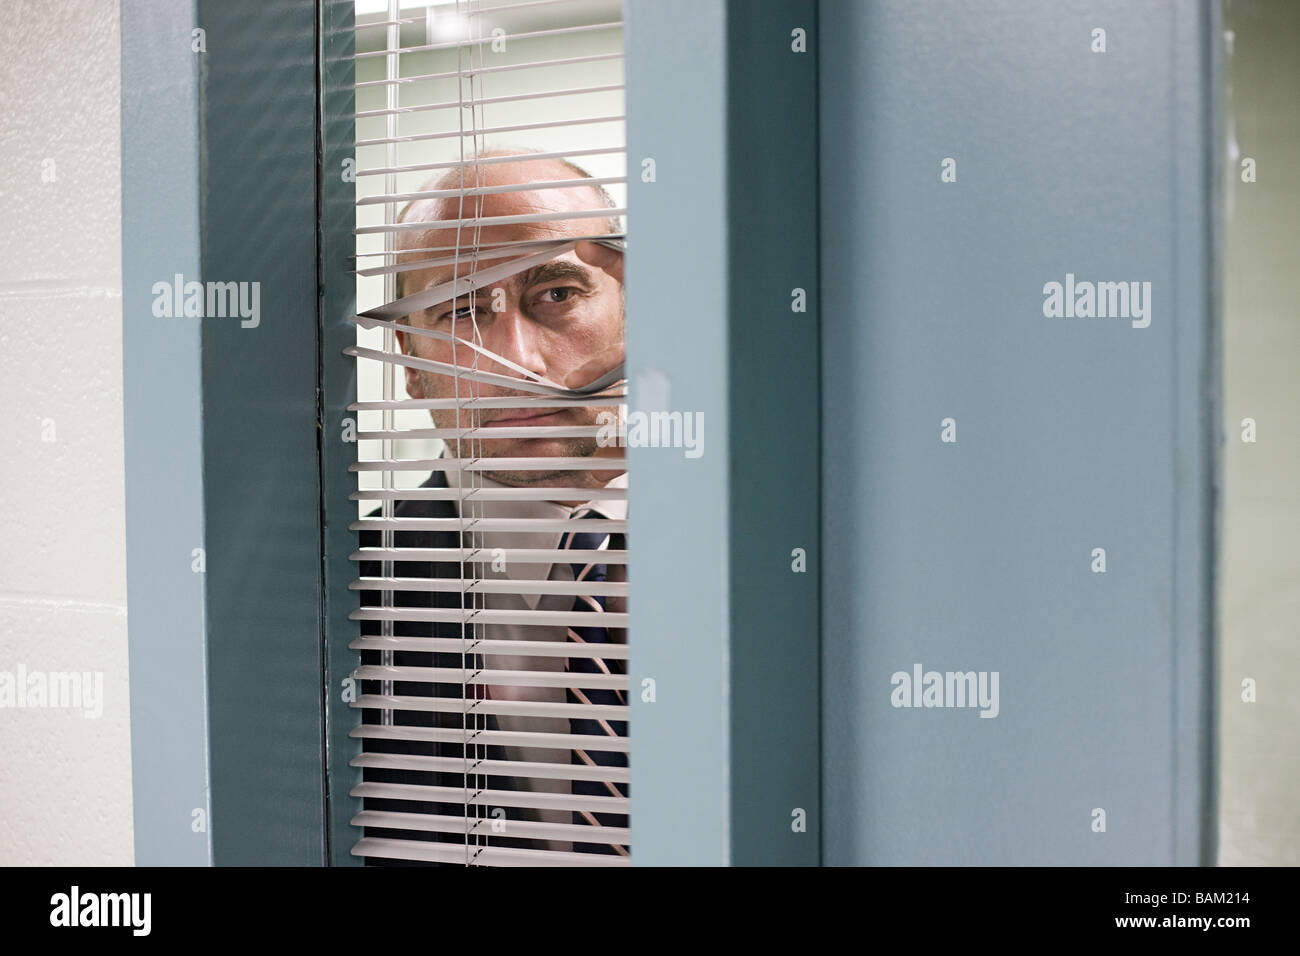 Detective looking through blinds - Stock Image